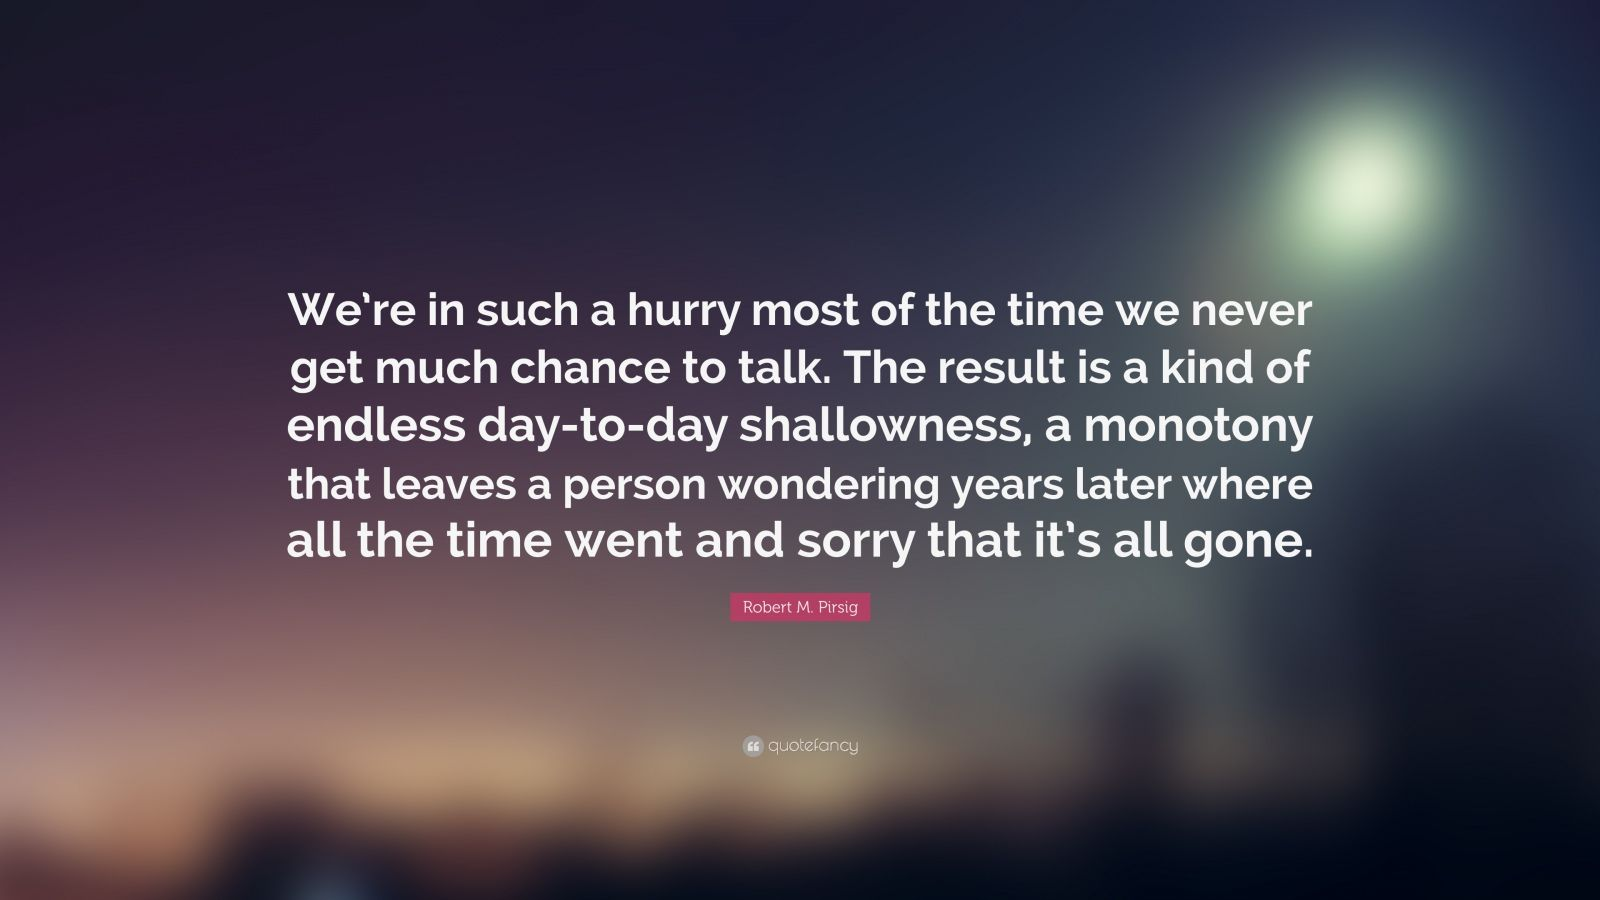 "Robert M. Pirsig Quote: ""We're in such a hurry most of the time we never get much chance to talk. The result is a kind of endless day-to-day shallowness, a monotony that leaves a person wondering years later where all the time went and sorry that it's all gone."""